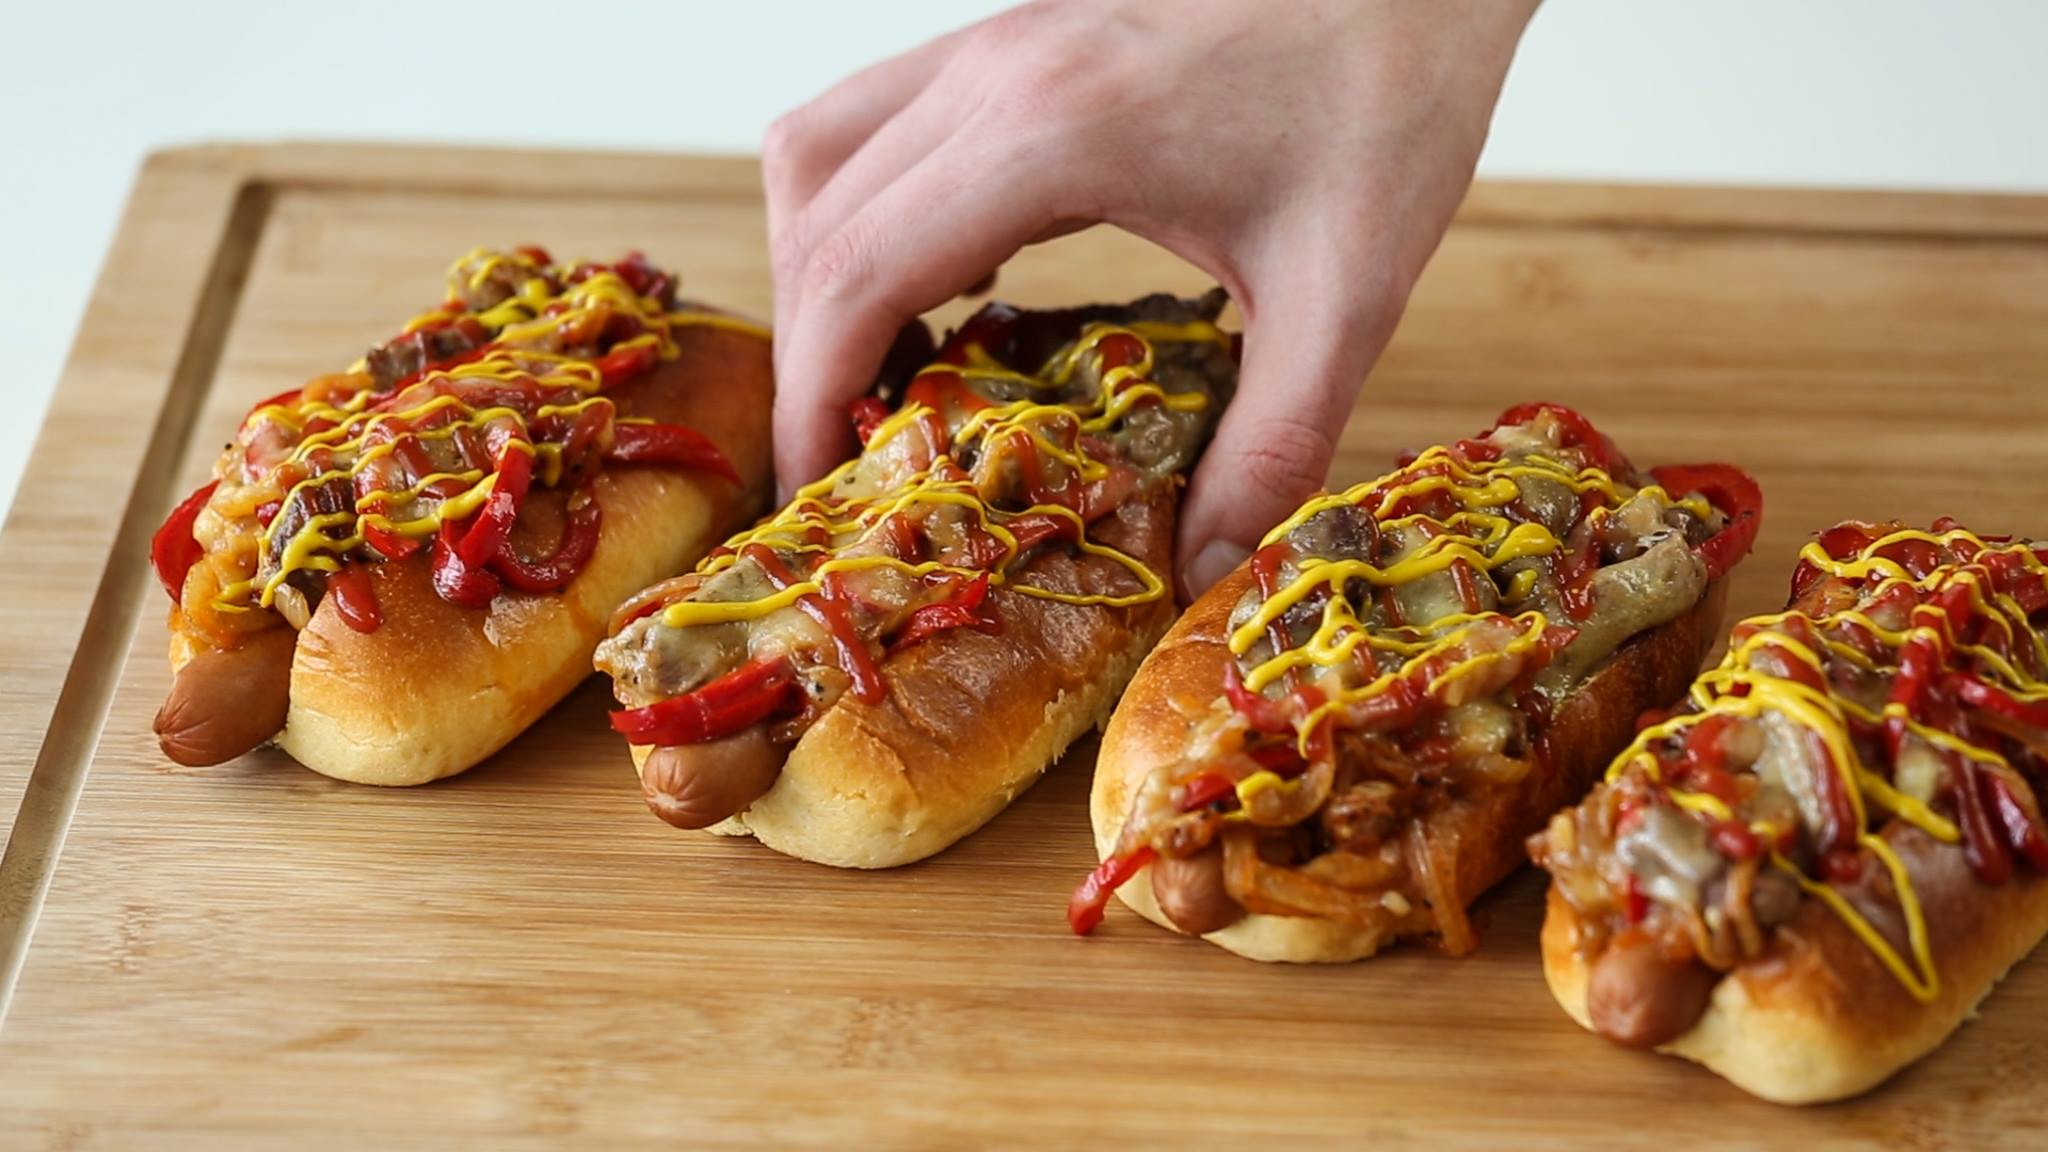 Heres How You Make Philly Cheese Steak Dogs 13287924 10154124017099361 679455497 o